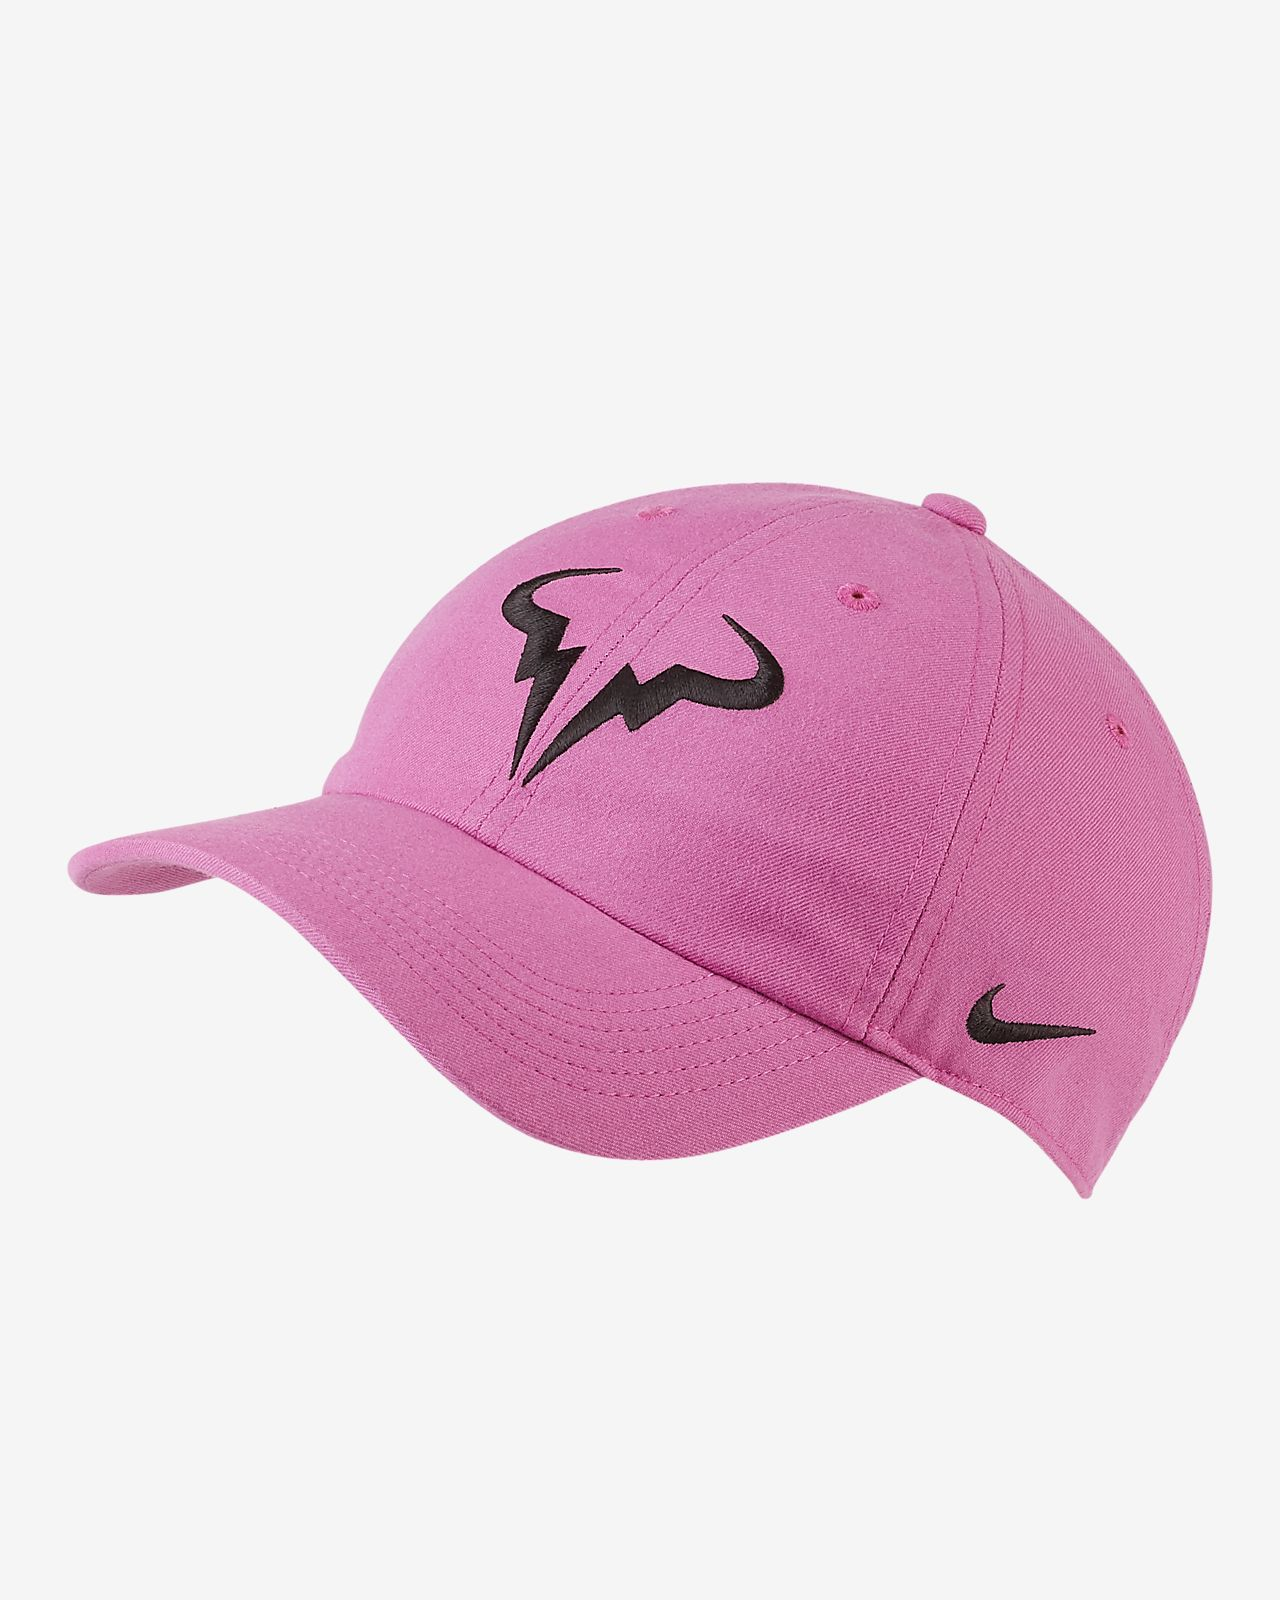 00af84b704351 ... clearance nikecourt aerobill rafa h86 adjustable tennis hat dc23b 79886